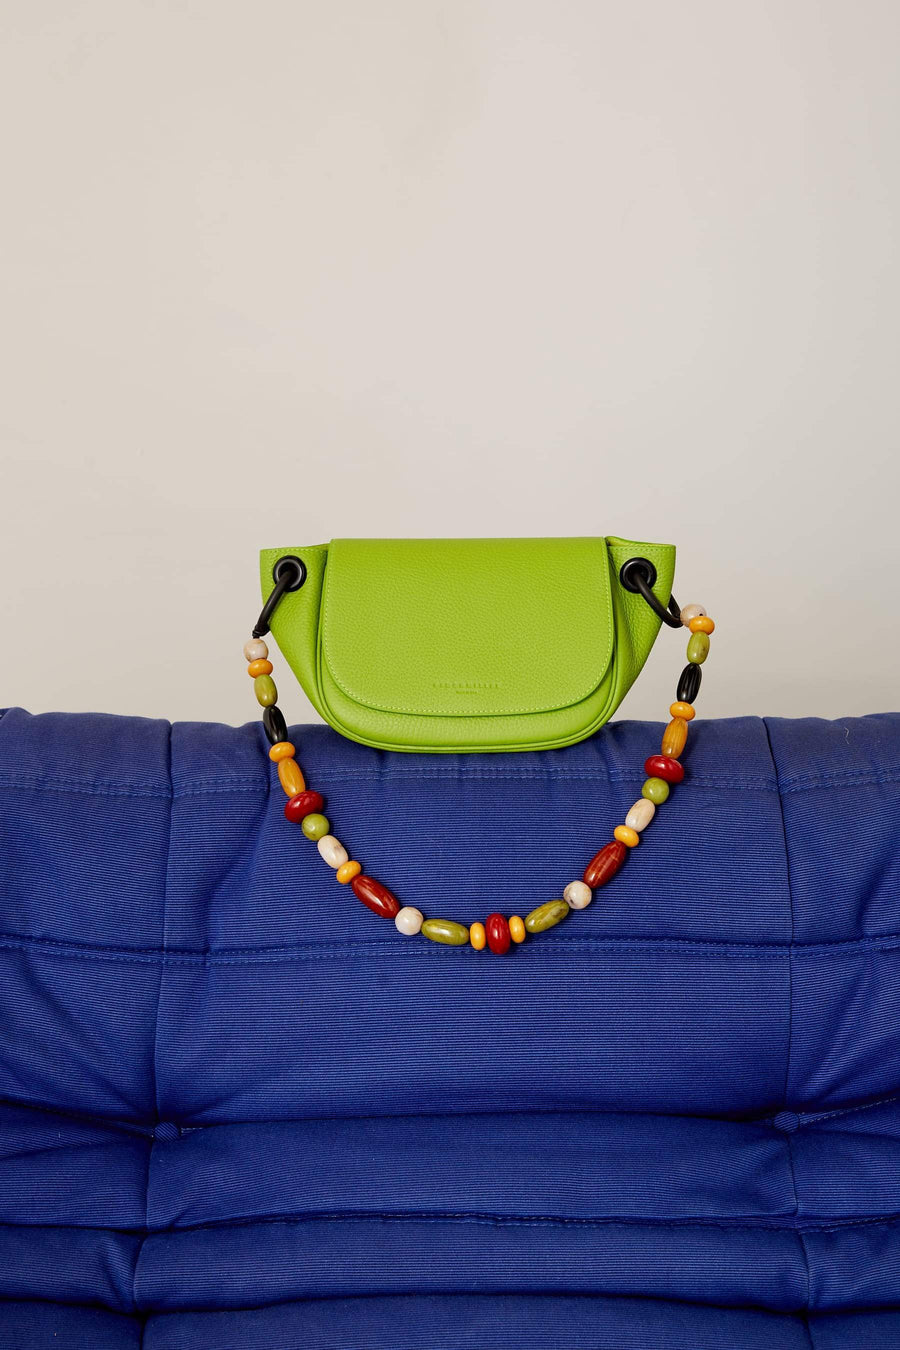 Bend Bag in Kiwi Bead Strap